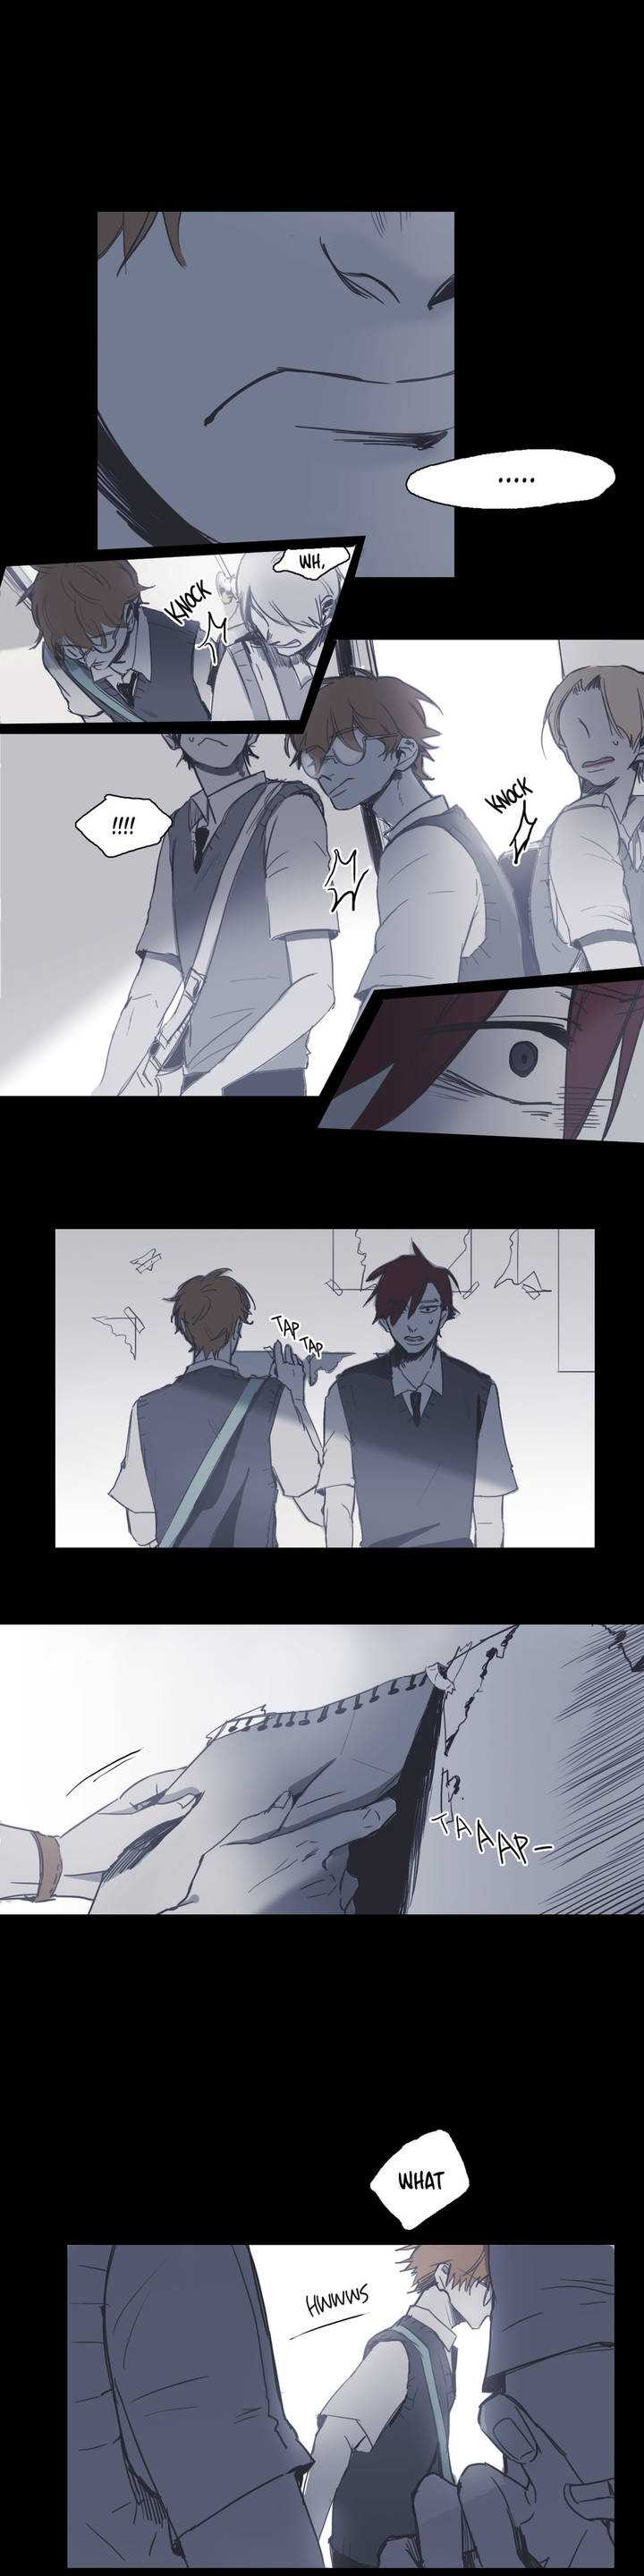 Never Understand - Chapter 18